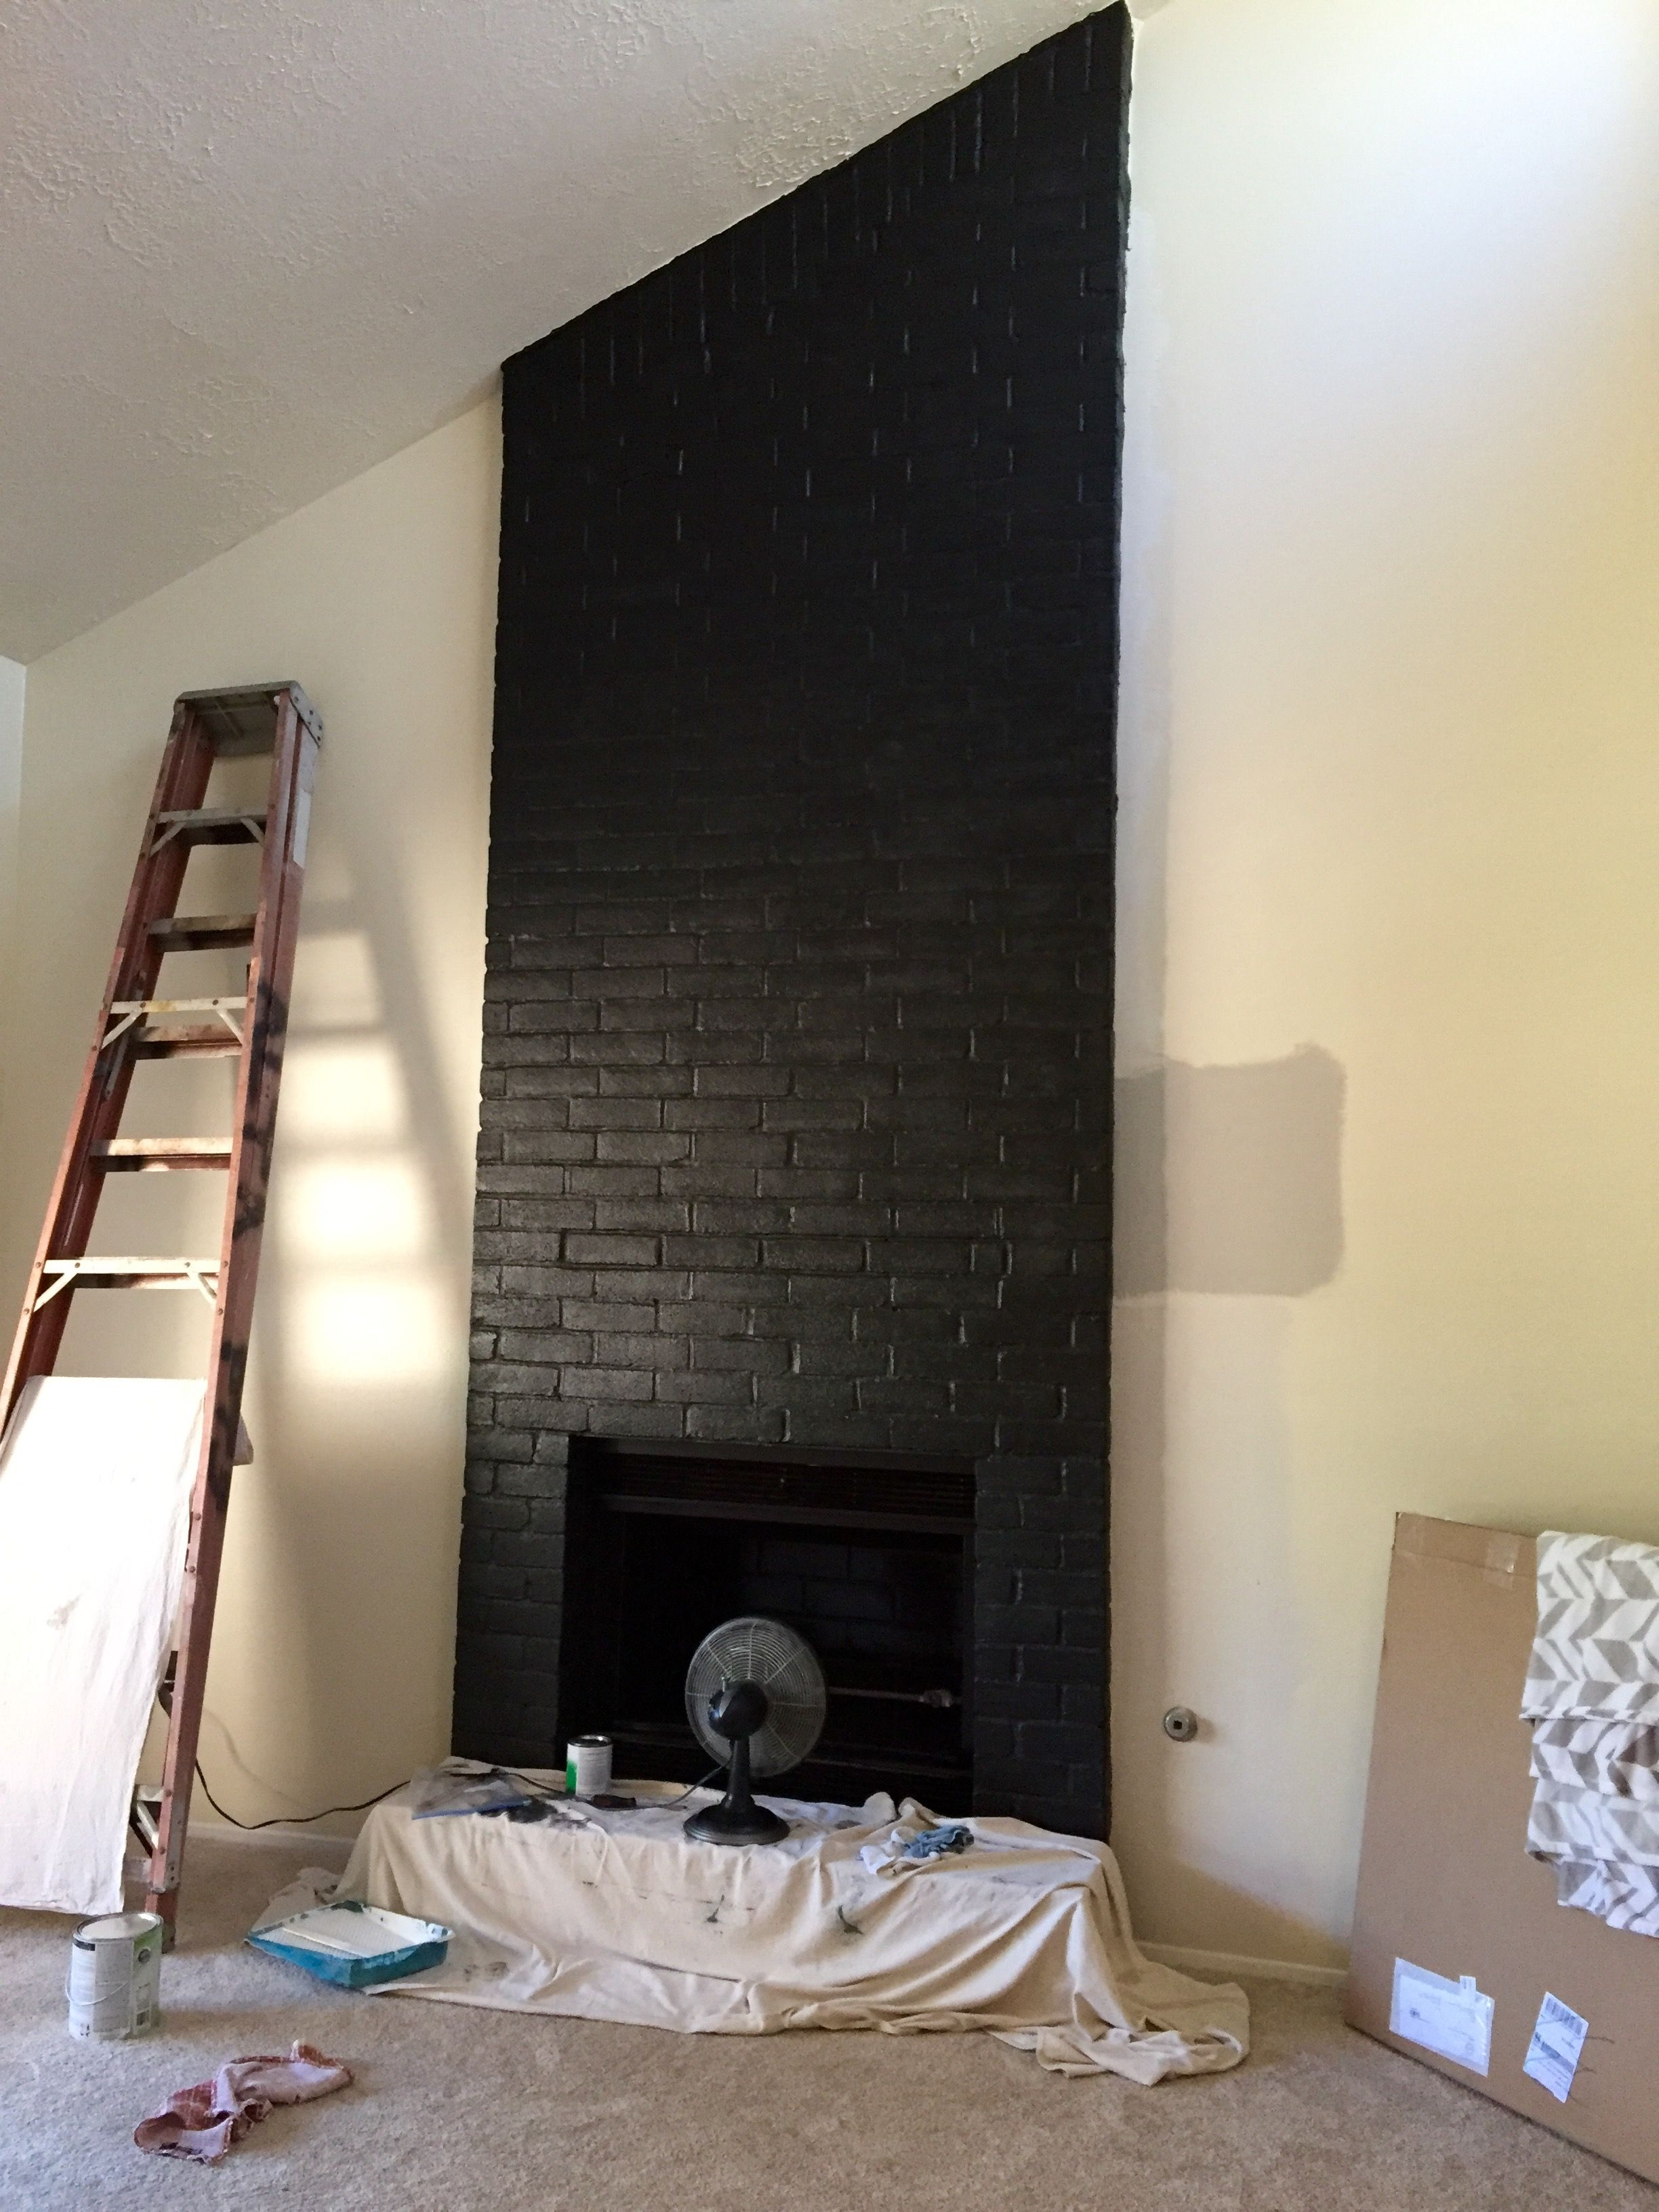 satin black paint enlivens this brick fireplace first home